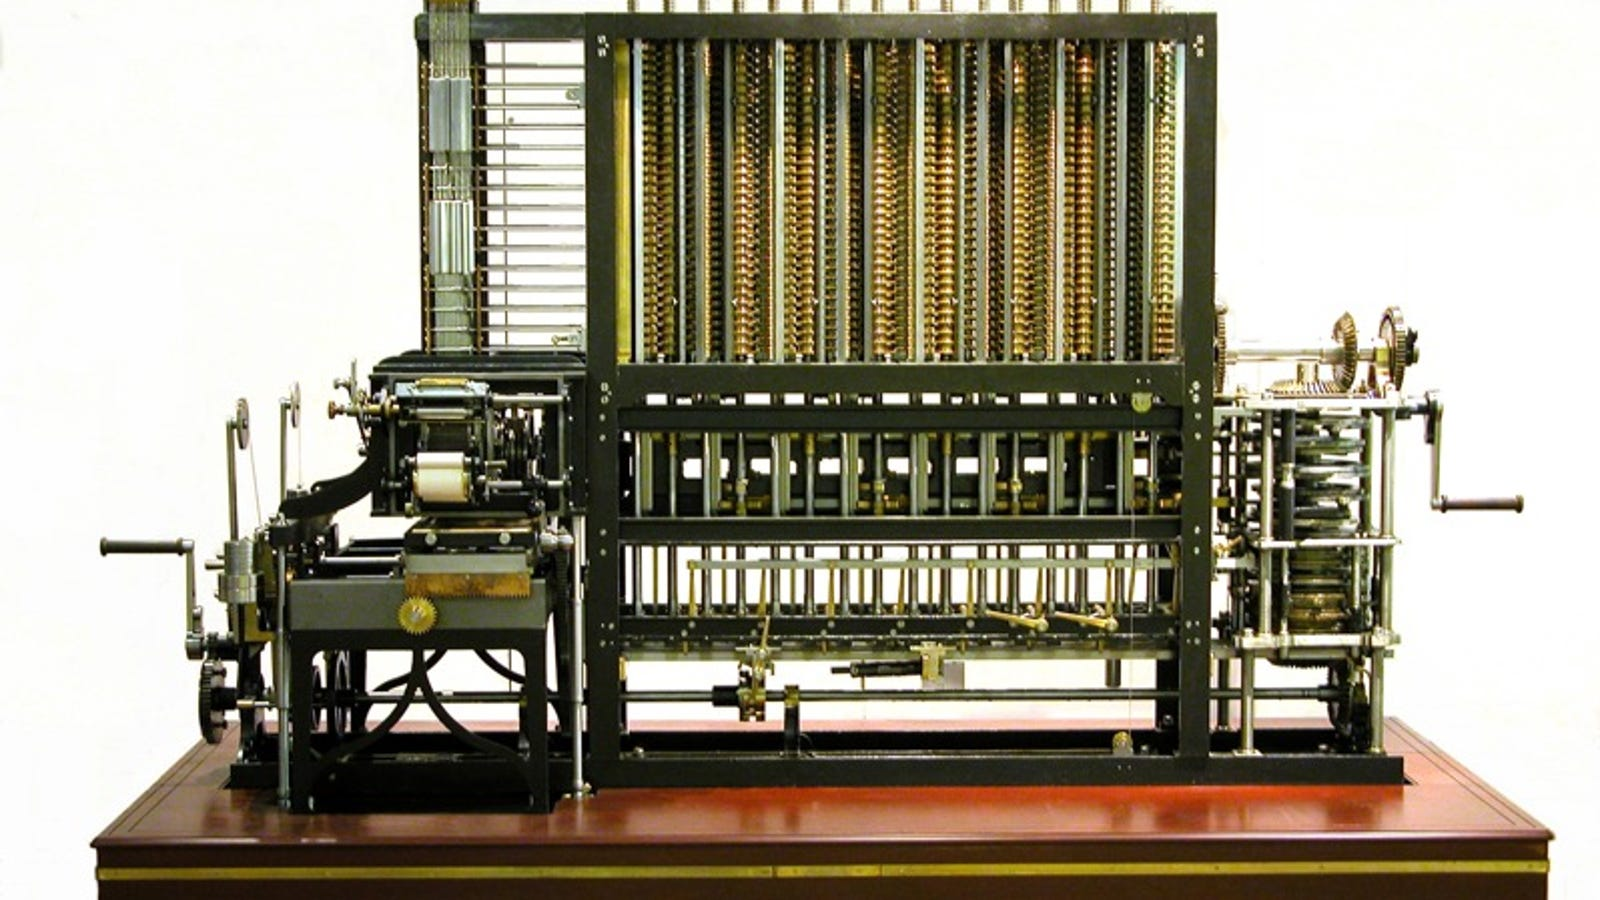 11 Calculators That Show How Far Computing Has Come in the ... |The Difference Engine